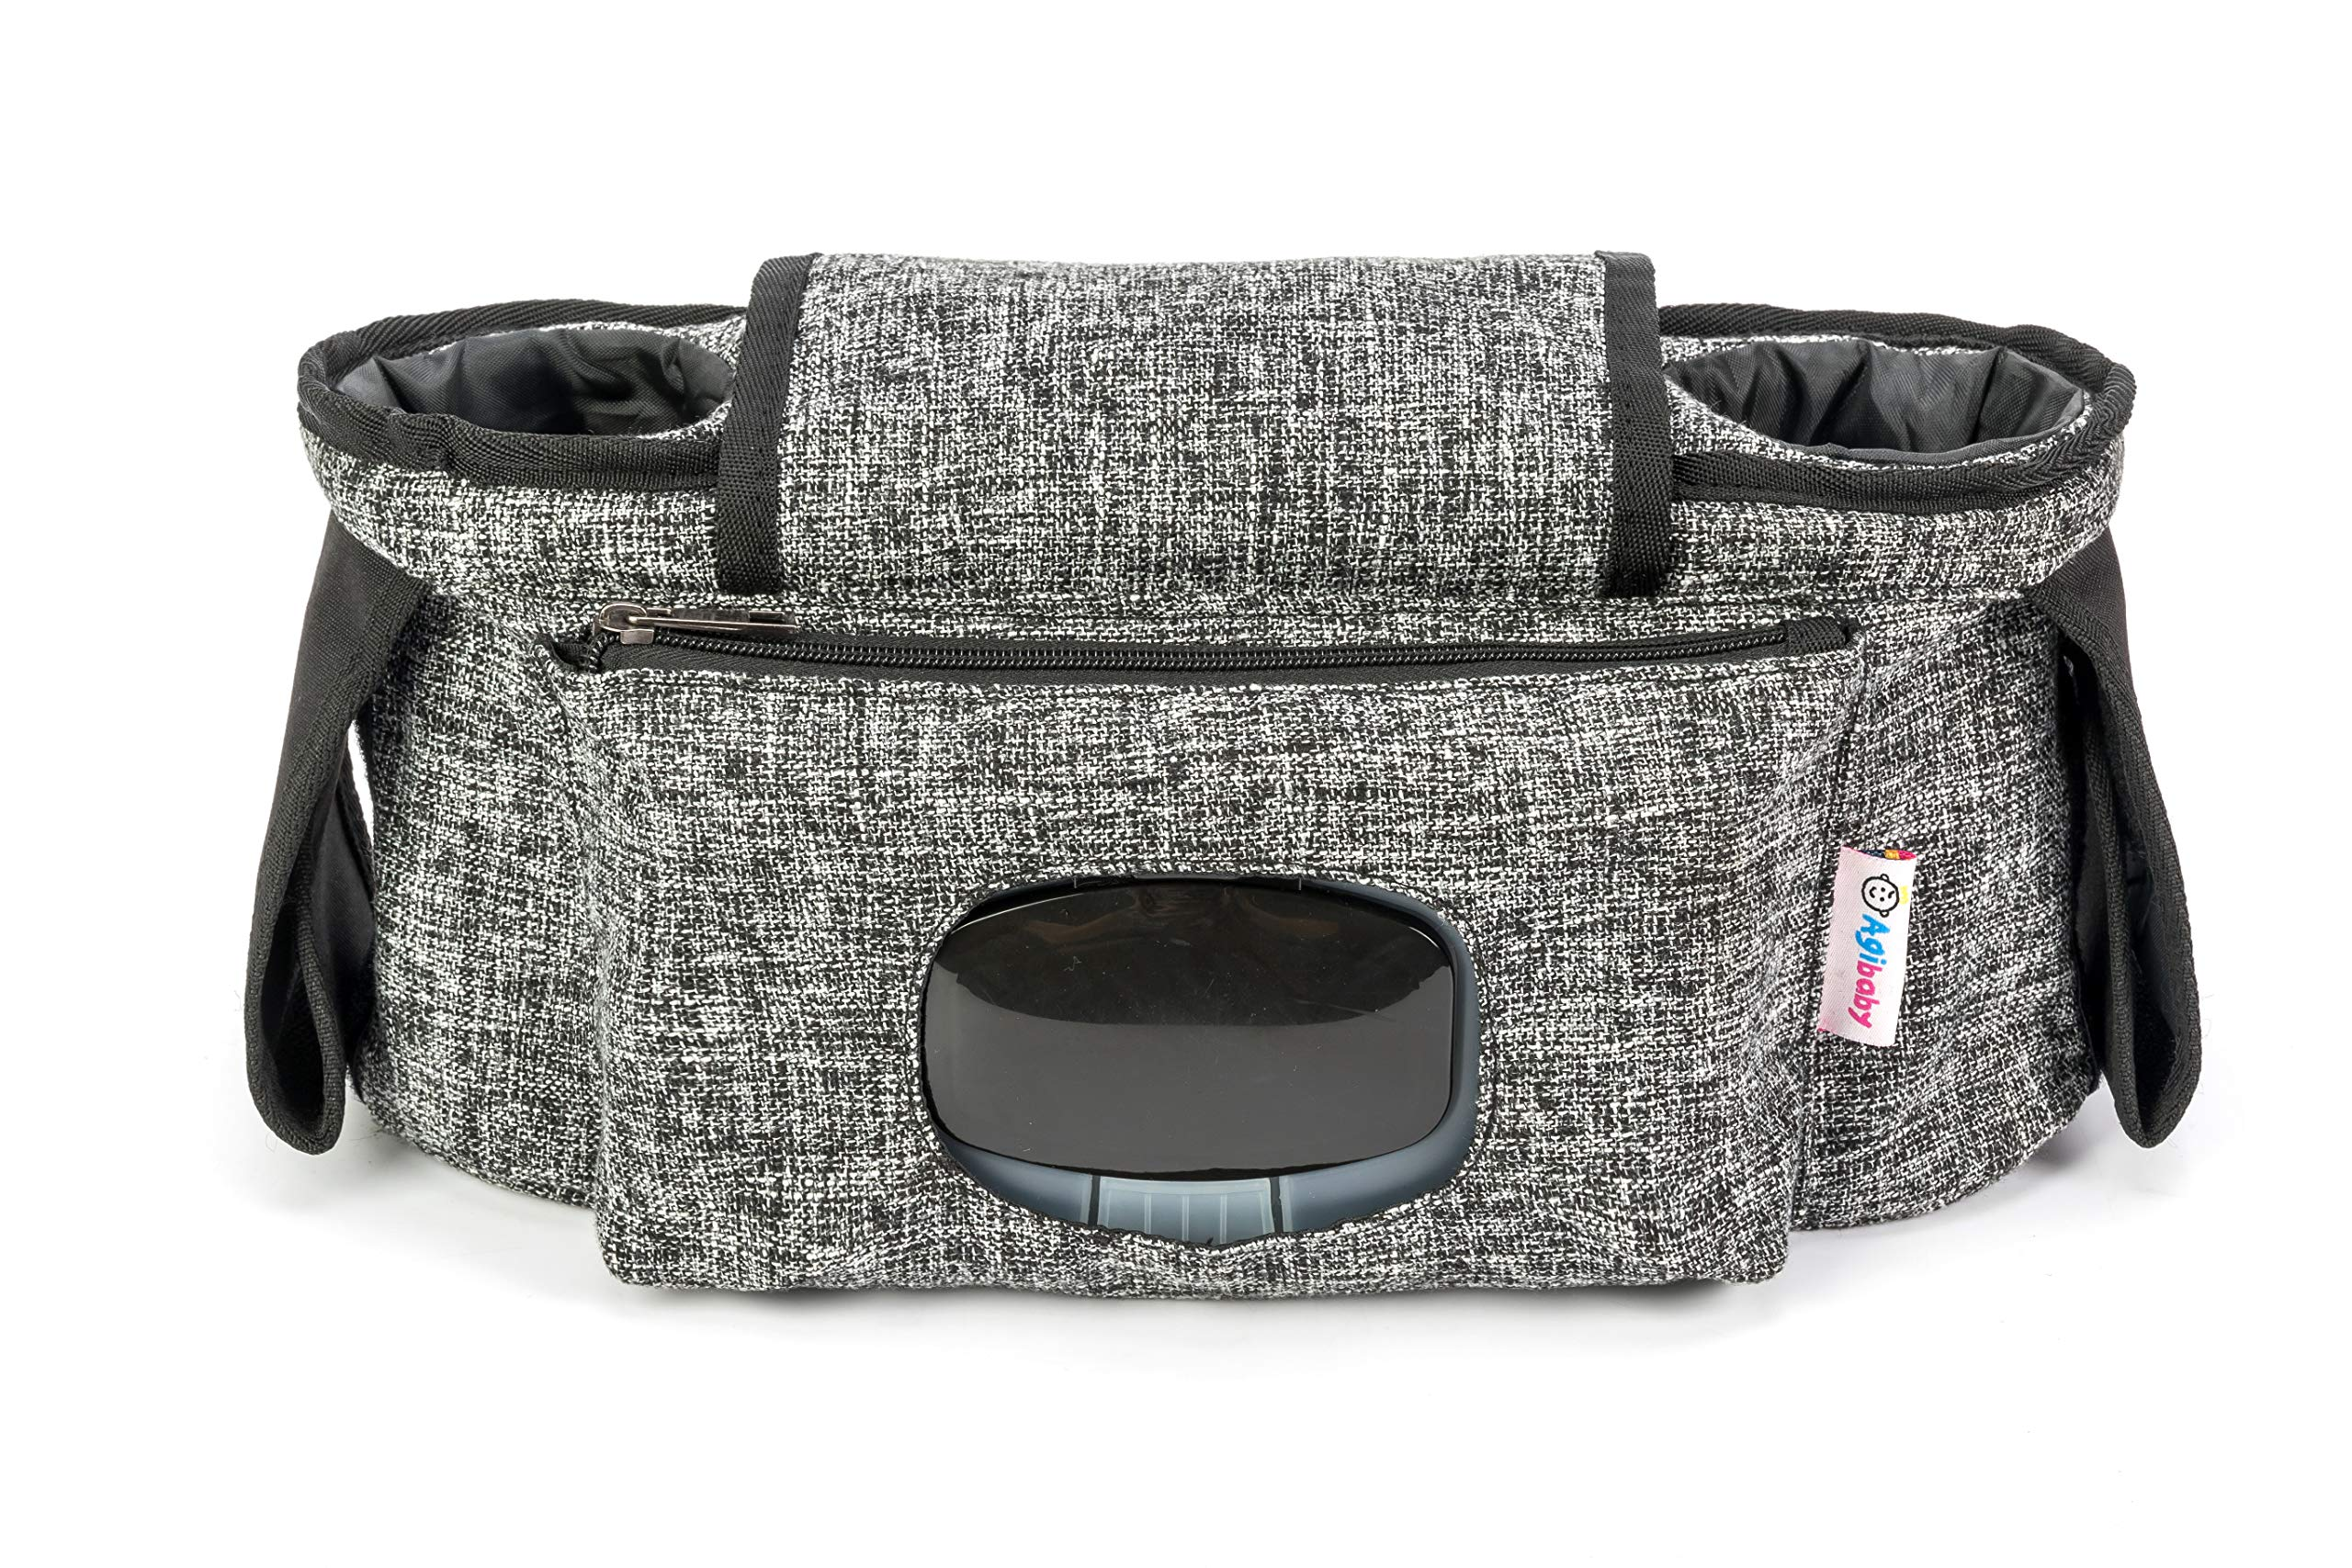 Agibaby Stroller Organizer, Insulated Deep Cup Holders, Instant Access Wipe Pocket, Universal Strap Fit, Large Storage Space by Agibaby (Image #6)